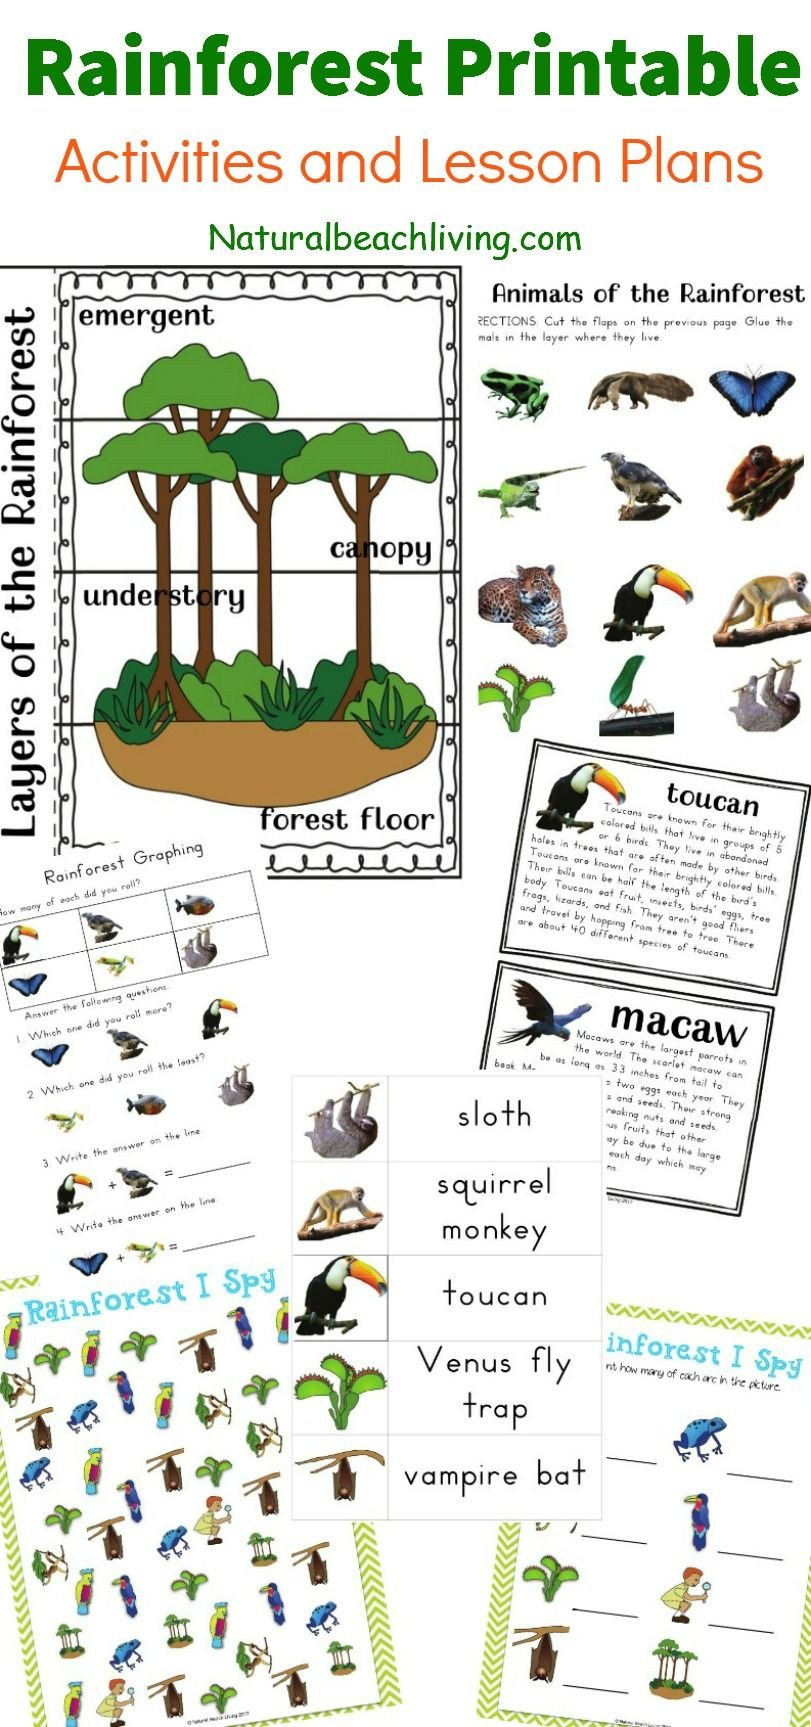 The Best Rainforest Printable Activities for Kids Natural